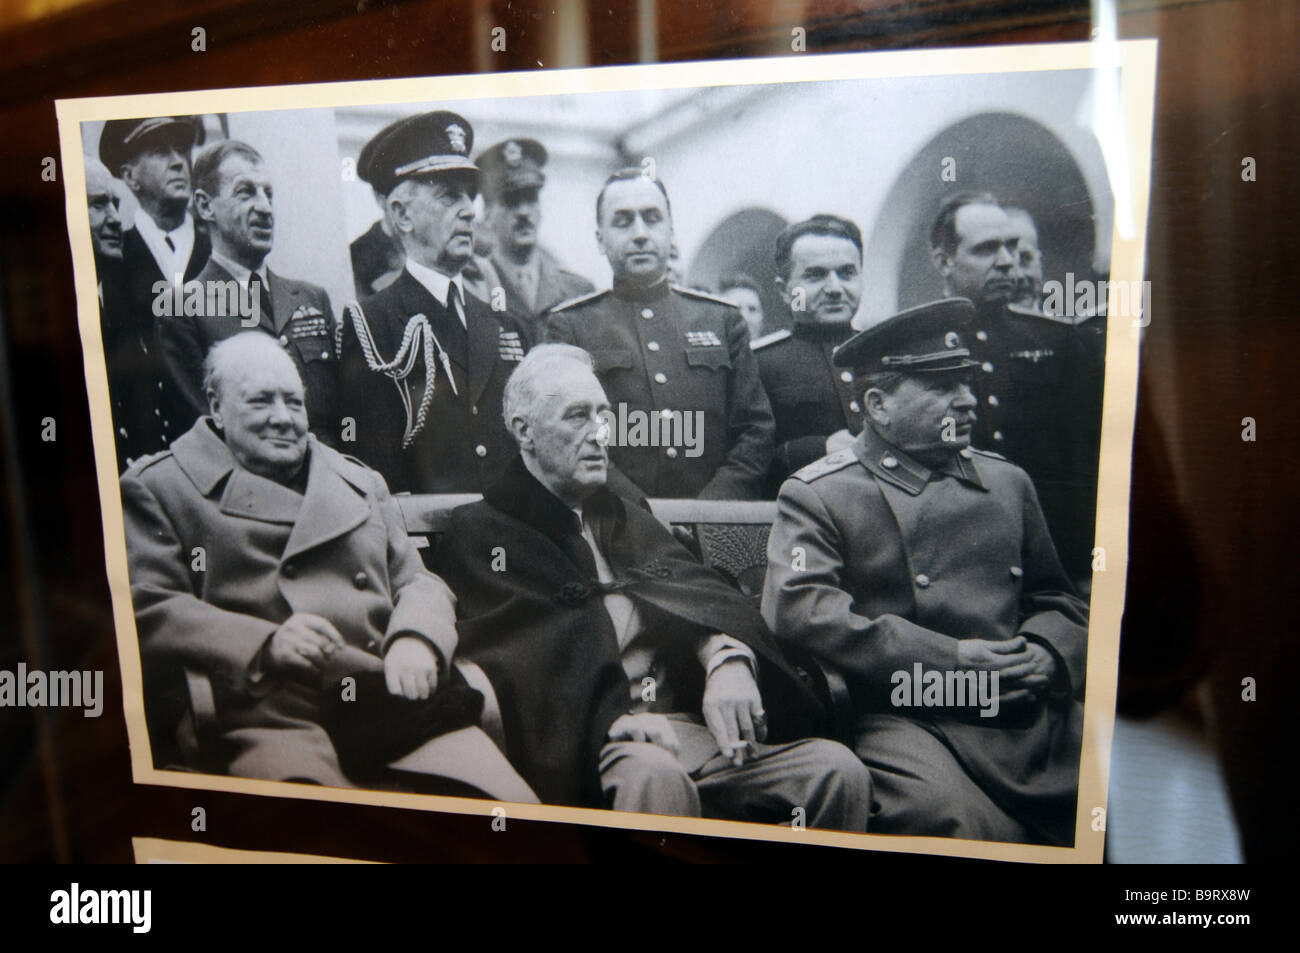 Photo of Churchill, Roosevelt, and Stalin at the Yalta conference; on display in the Livadia palace in Crimea, Ukraine. - Stock Image